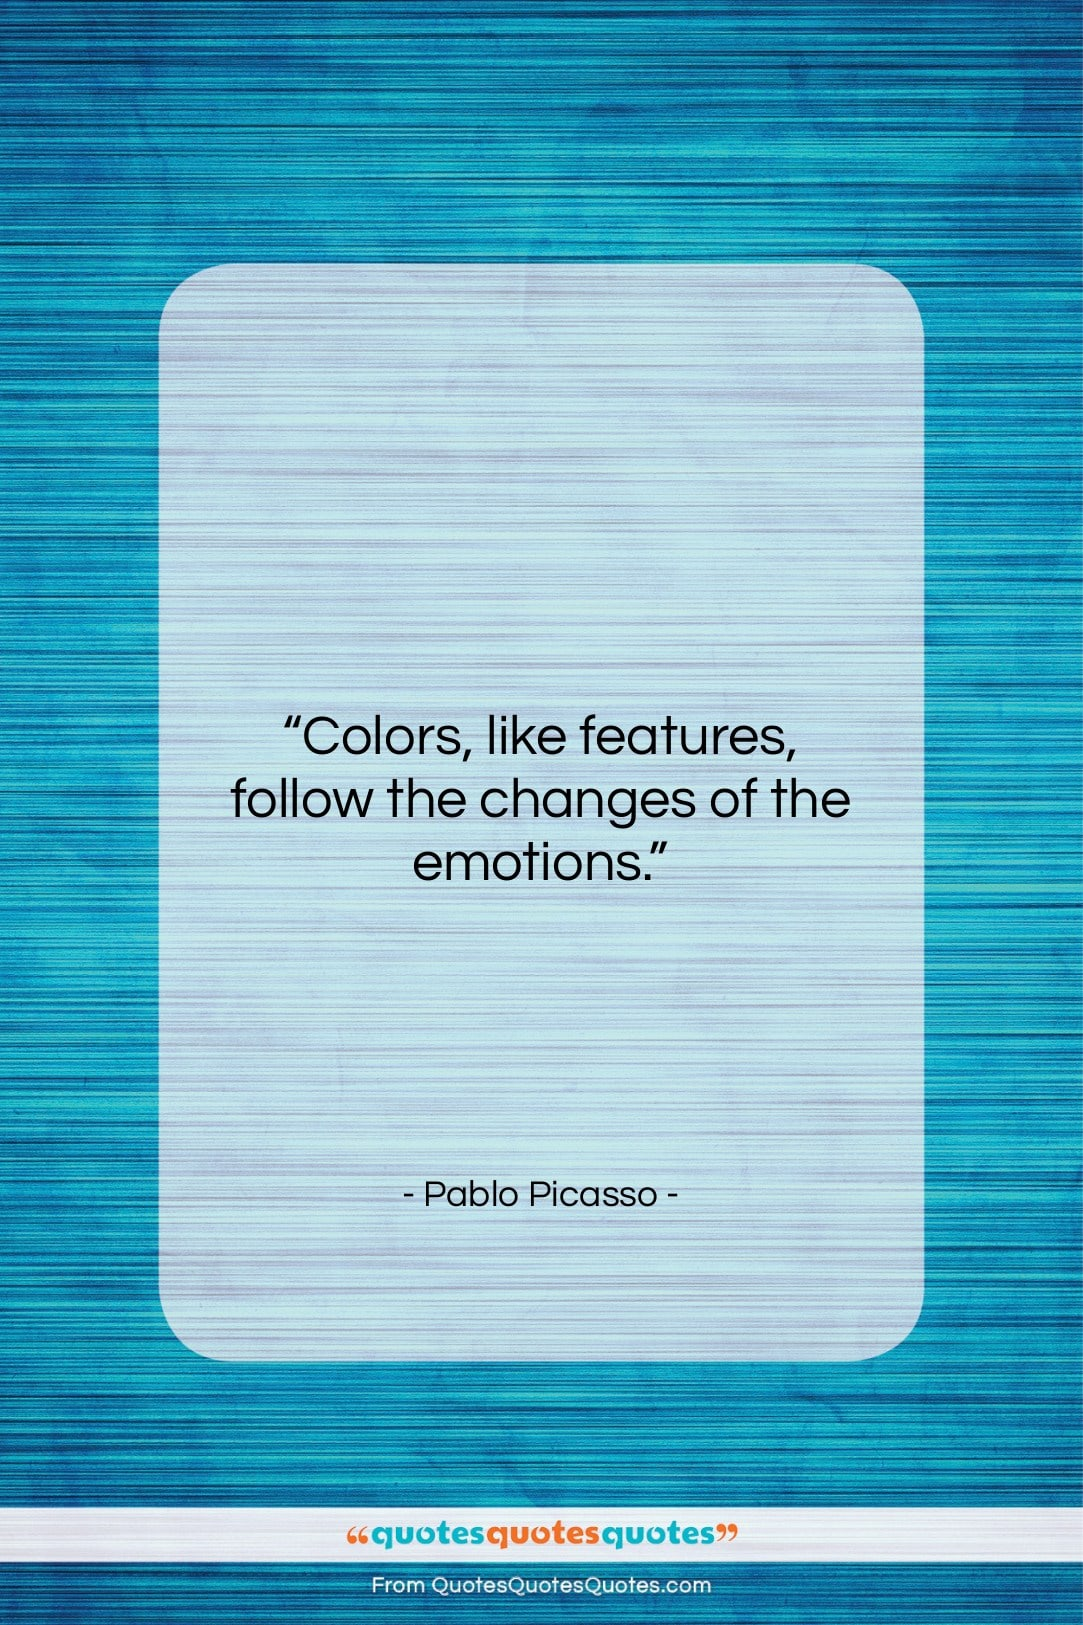 """Pablo Picasso quote: """"Colors, like features, follow the changes of…""""- at QuotesQuotesQuotes.com"""